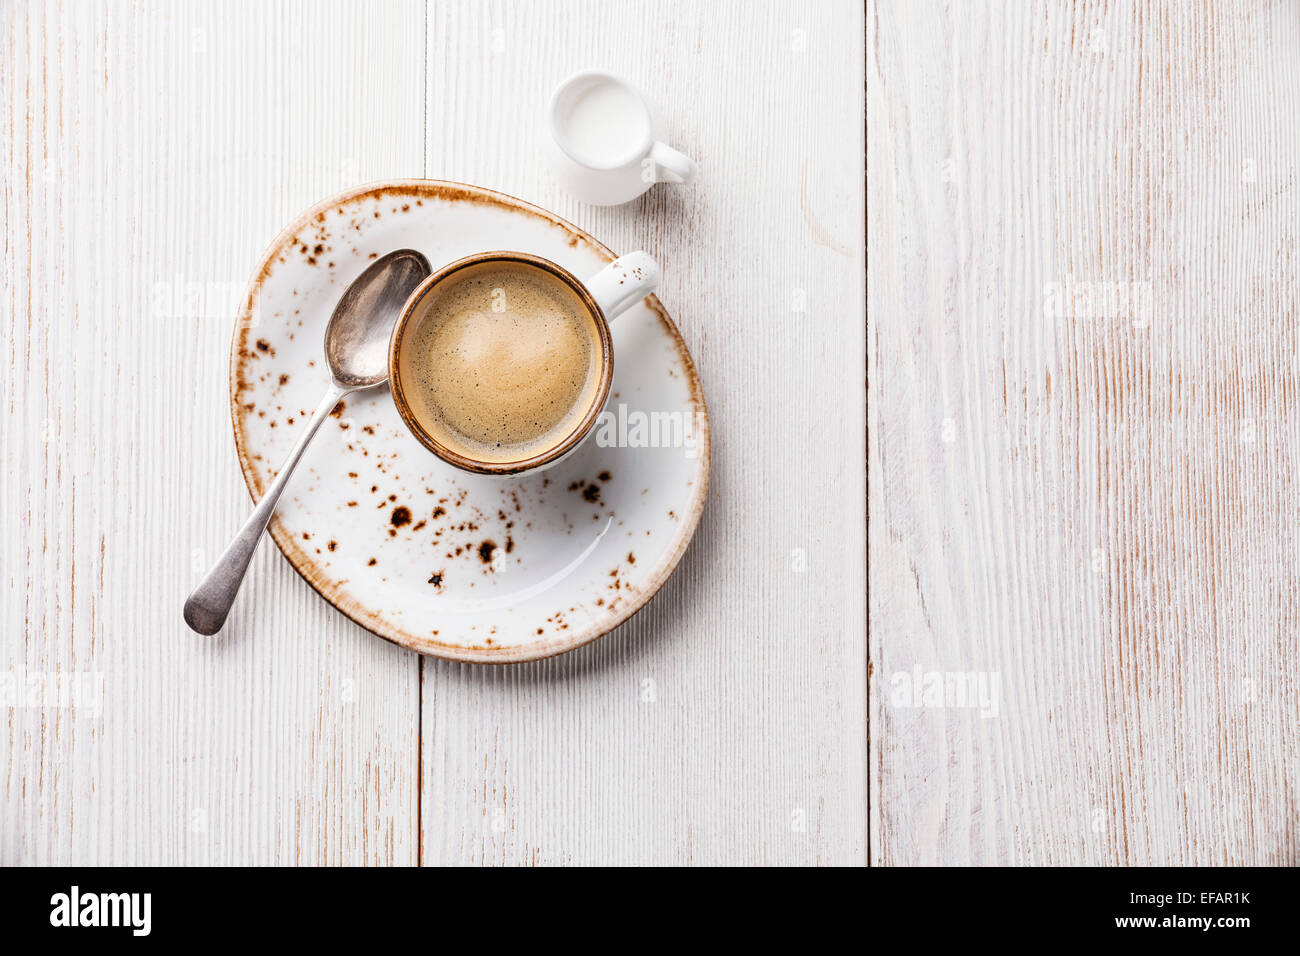 Coffee cup on white wooden background - Stock Image